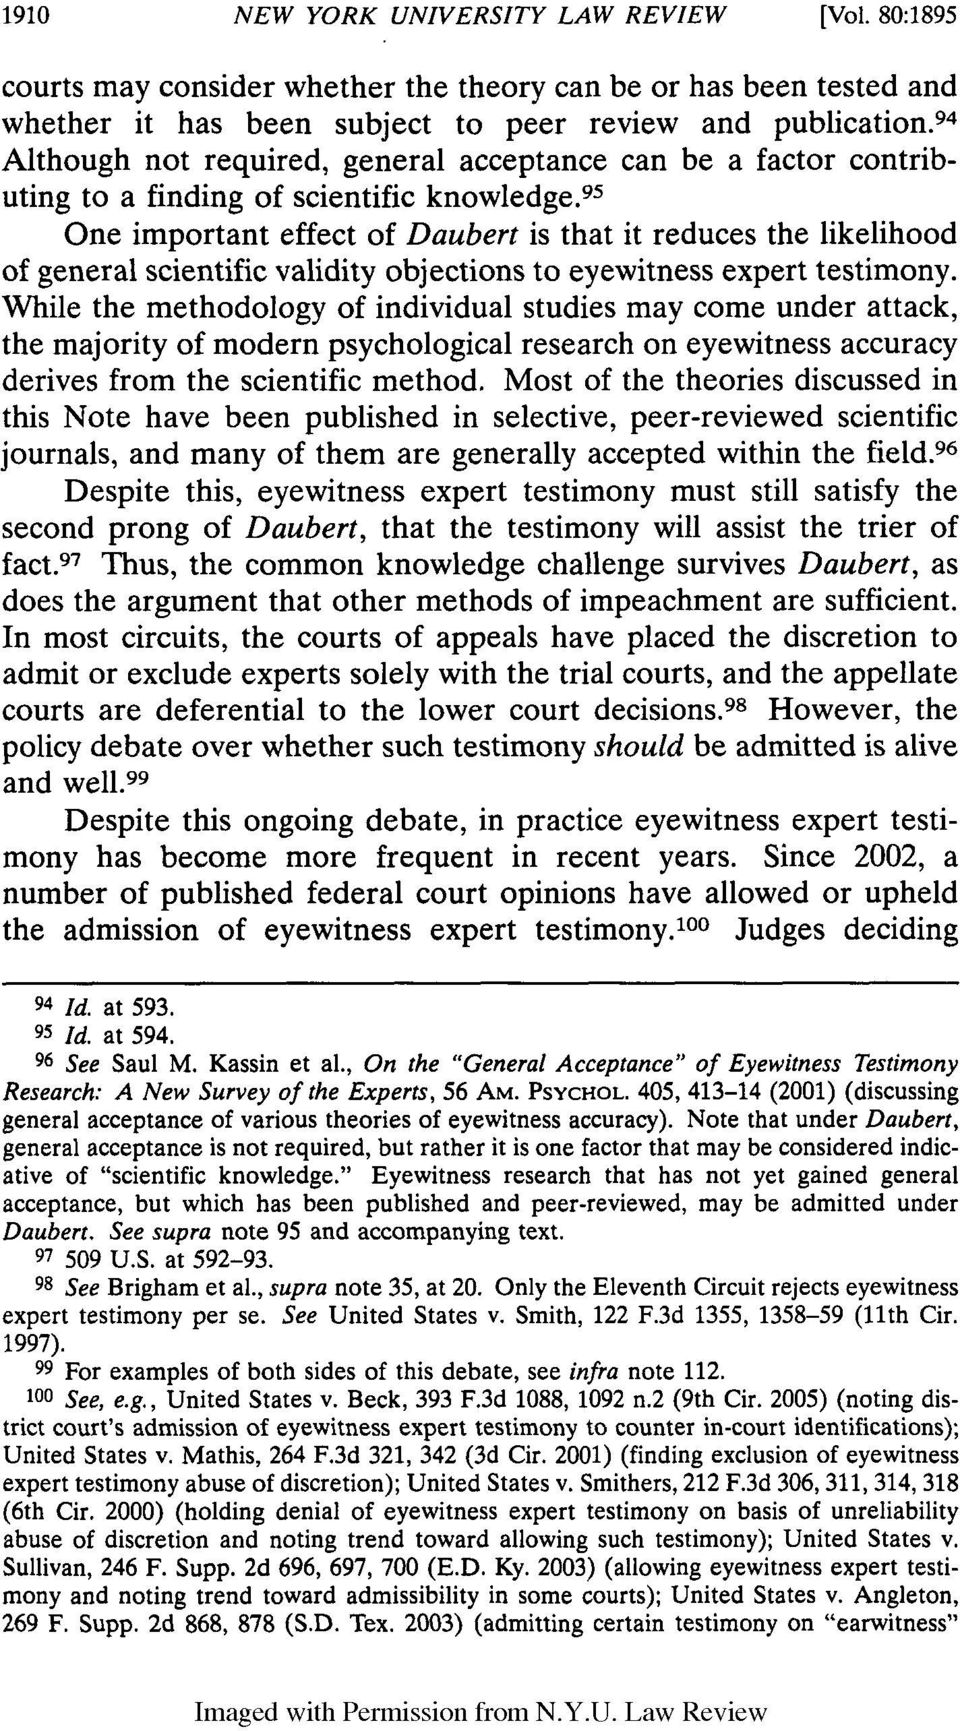 95 One important effect of Daubert is that it reduces the likelihood of general scientific validity objections to eyewitness expert testimony.